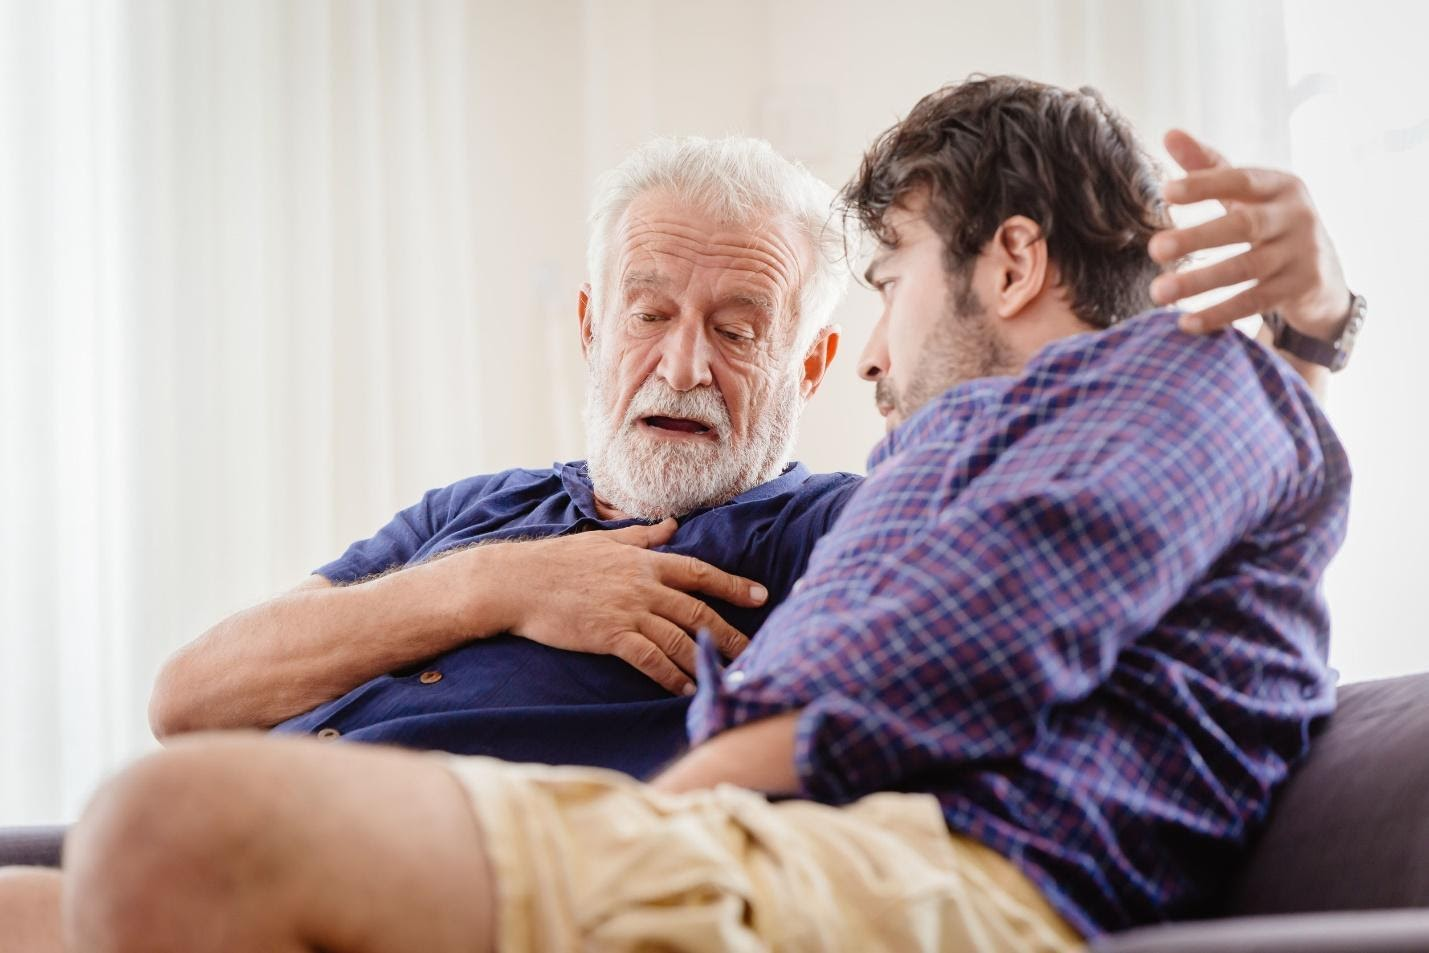 Ageism - What is it and how to Overcome it